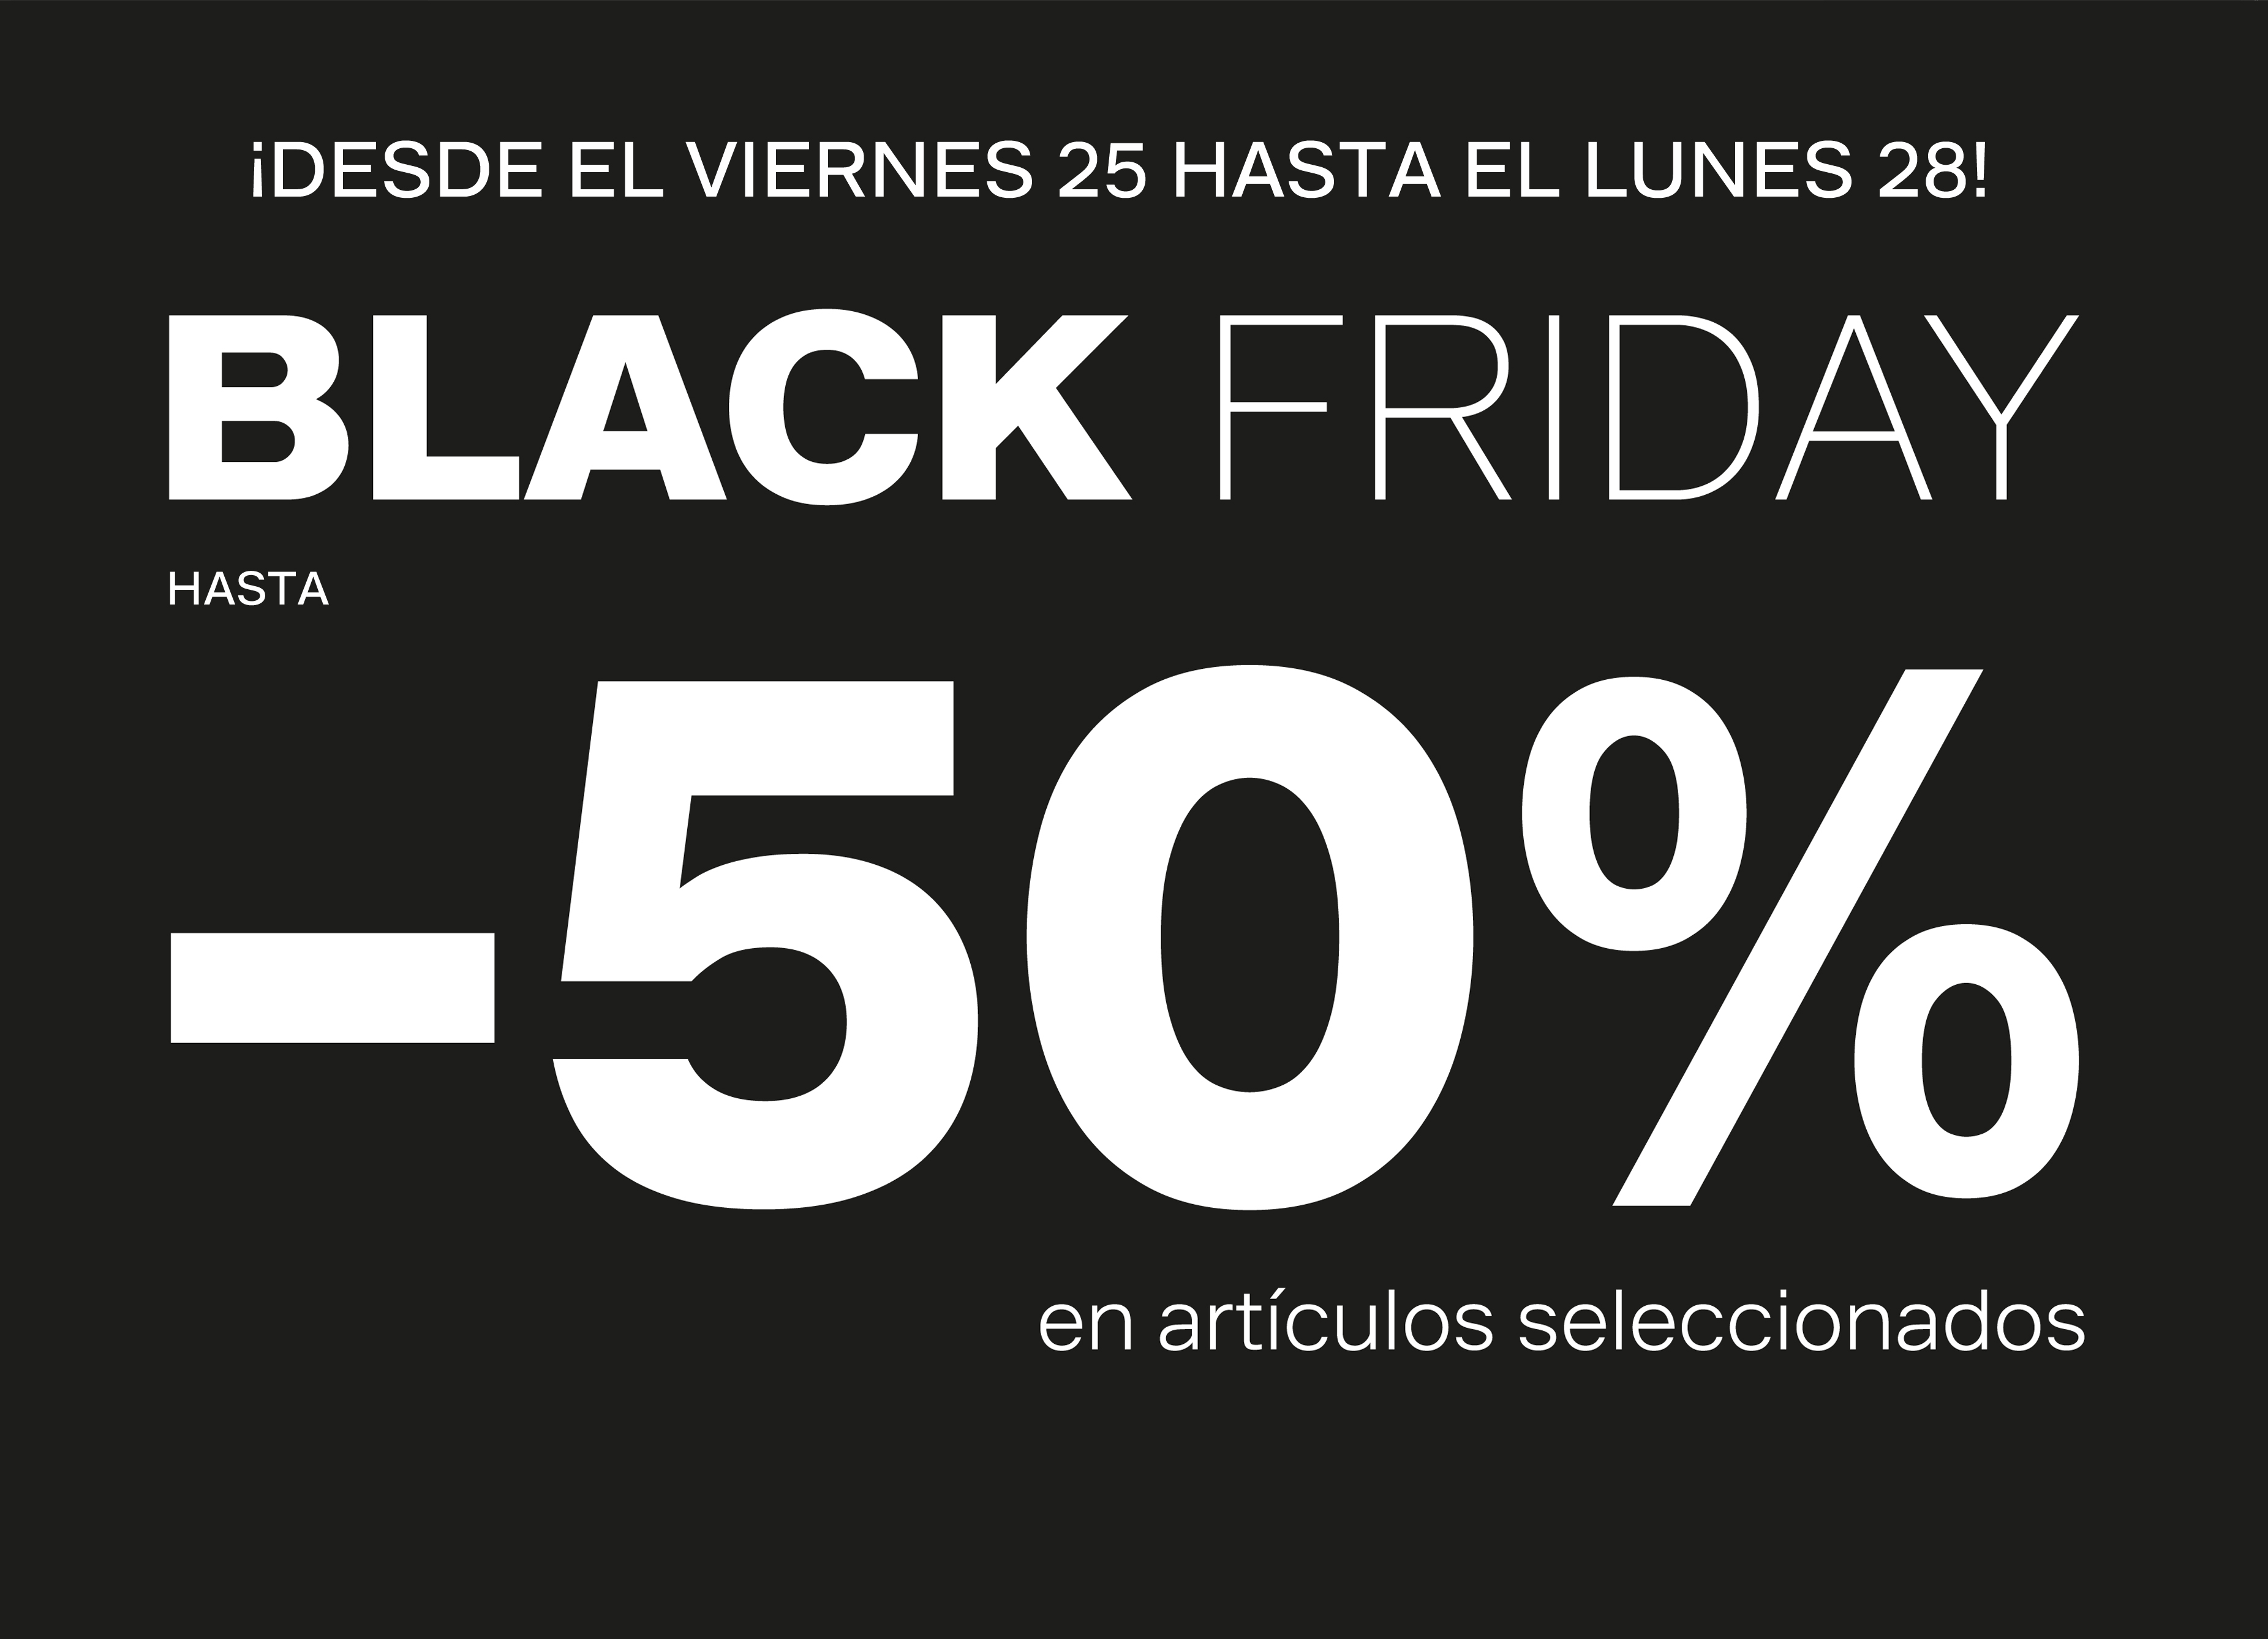 black friday en deichmann hasta el 50 de descuento parque corredor. Black Bedroom Furniture Sets. Home Design Ideas